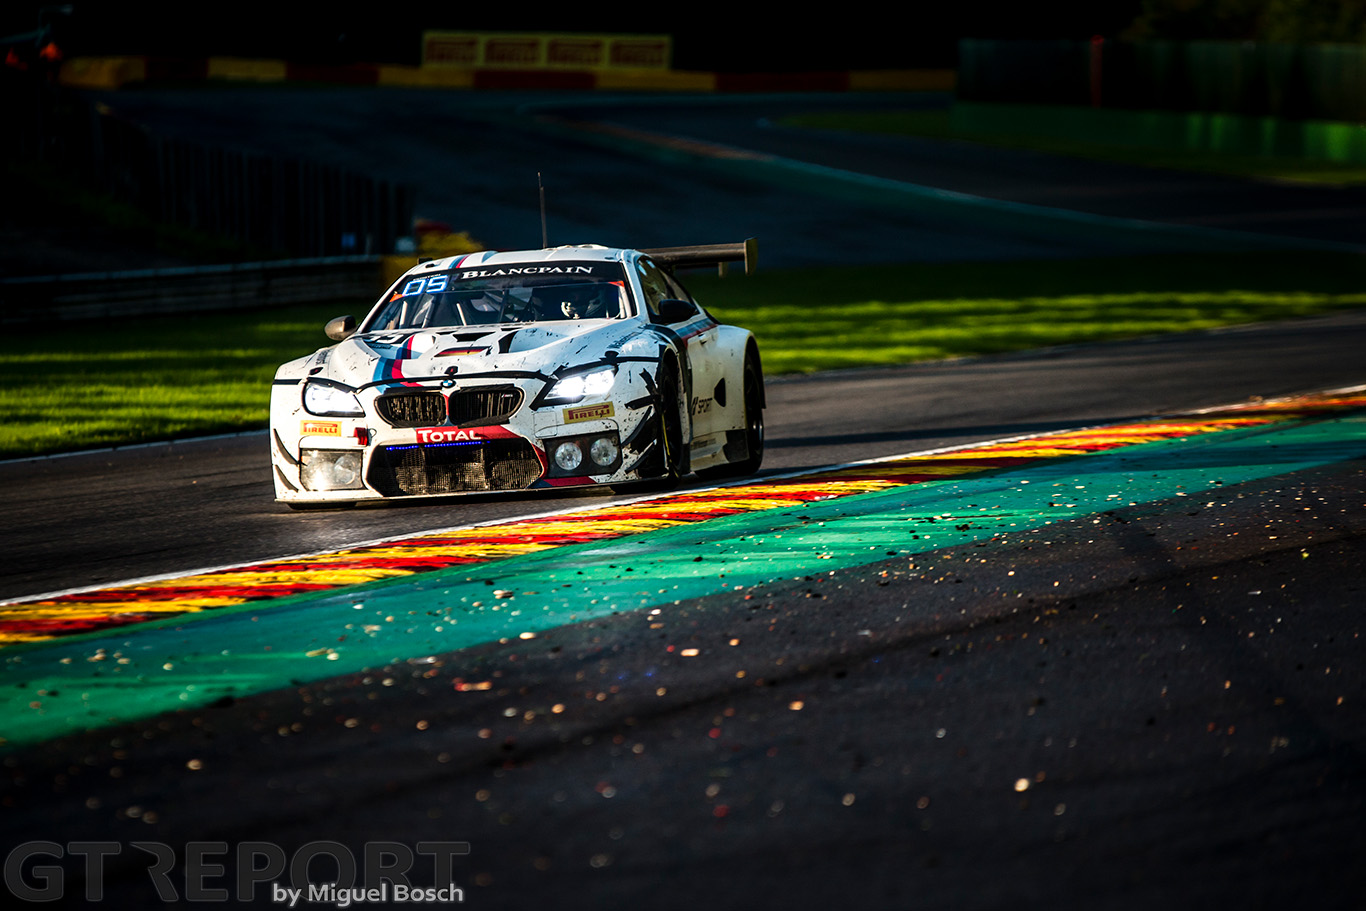 Christian Krognes at the 24 Hours of Spa: The race